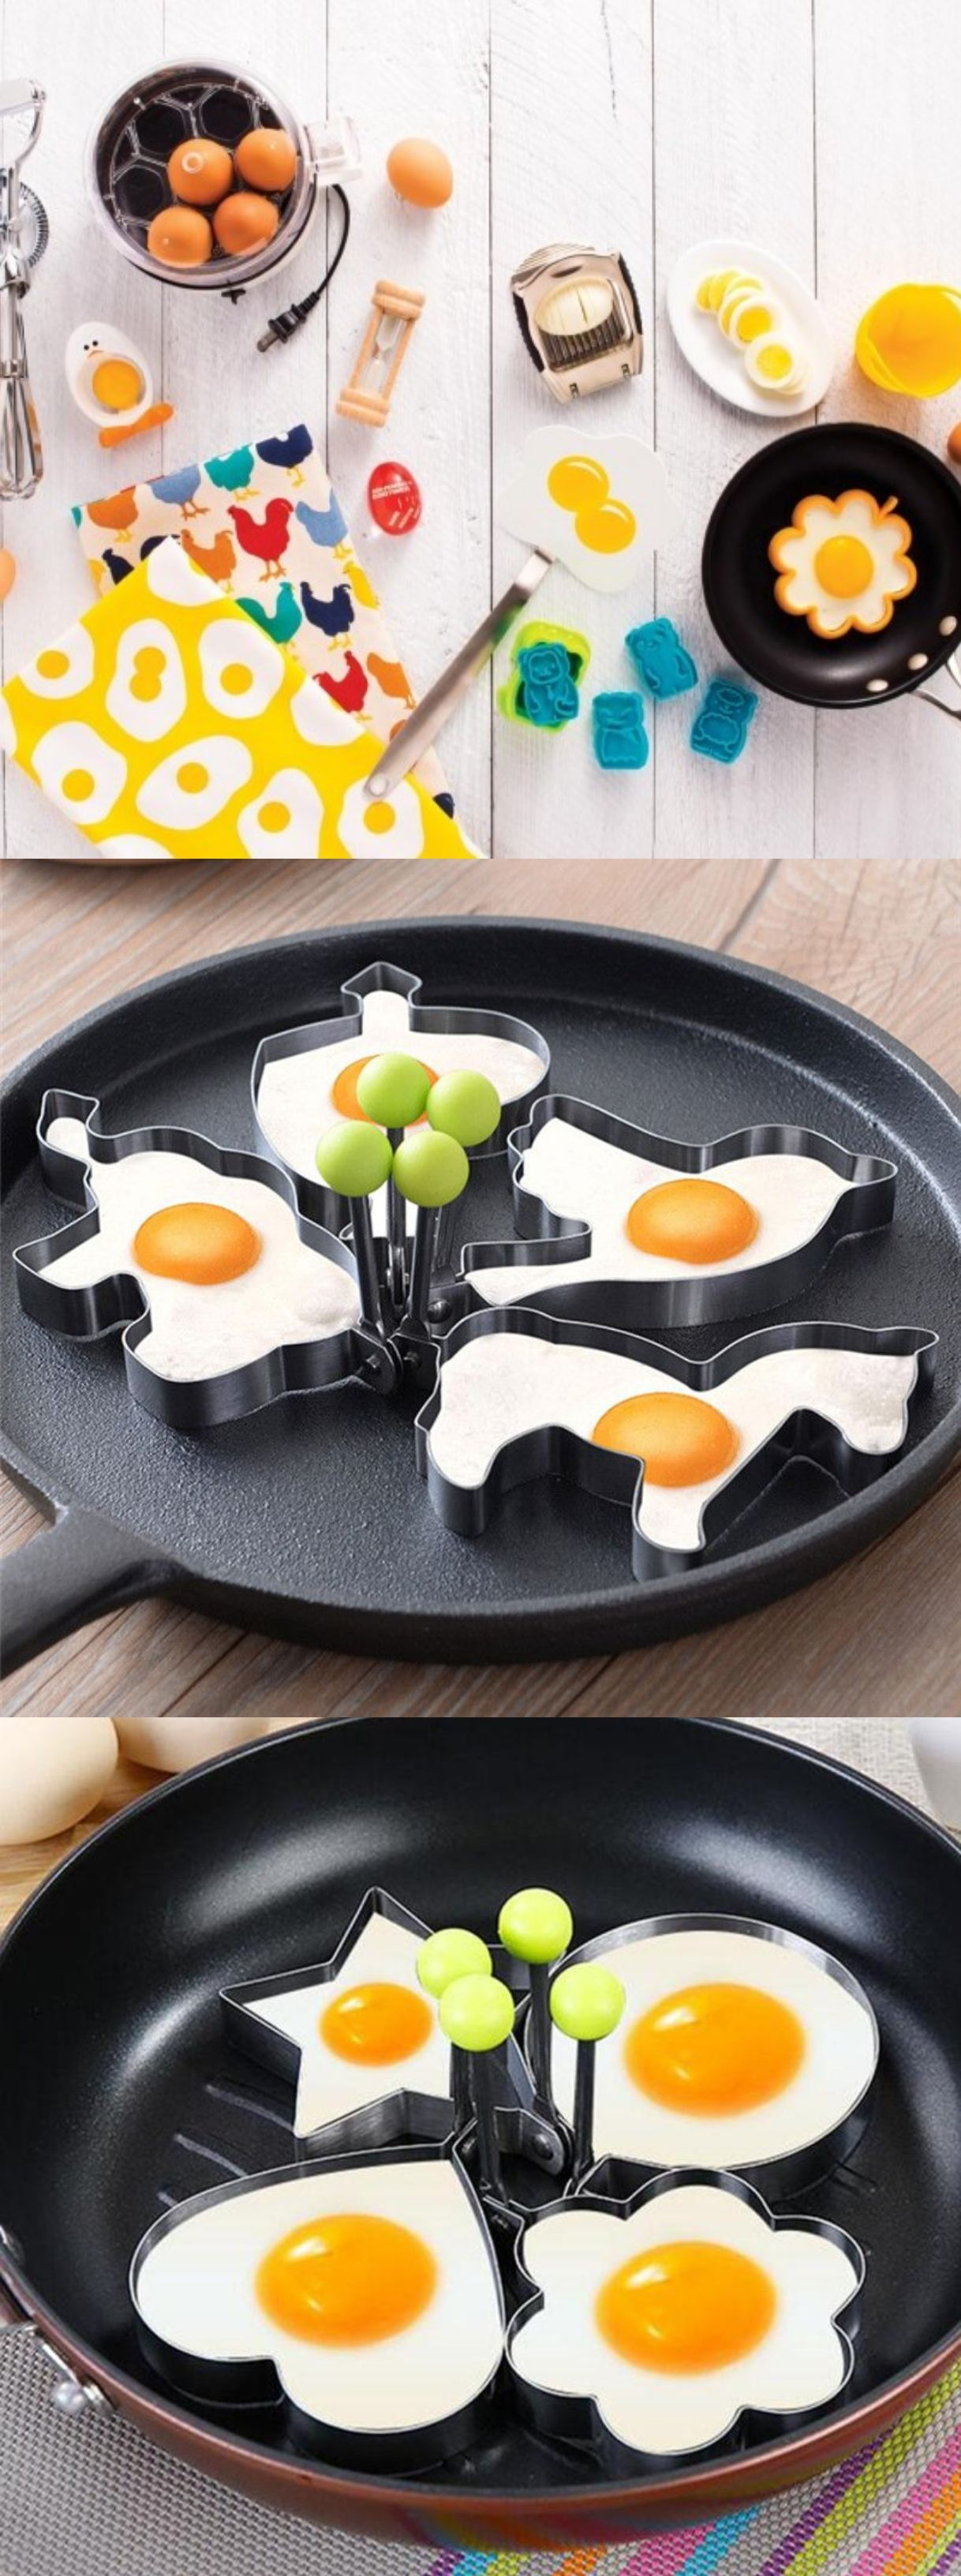 25 cool kitchen gadgets must have kitchen gadgets storage kitchen must haves kitchen gadgets on kitchen remodel must haves id=95615